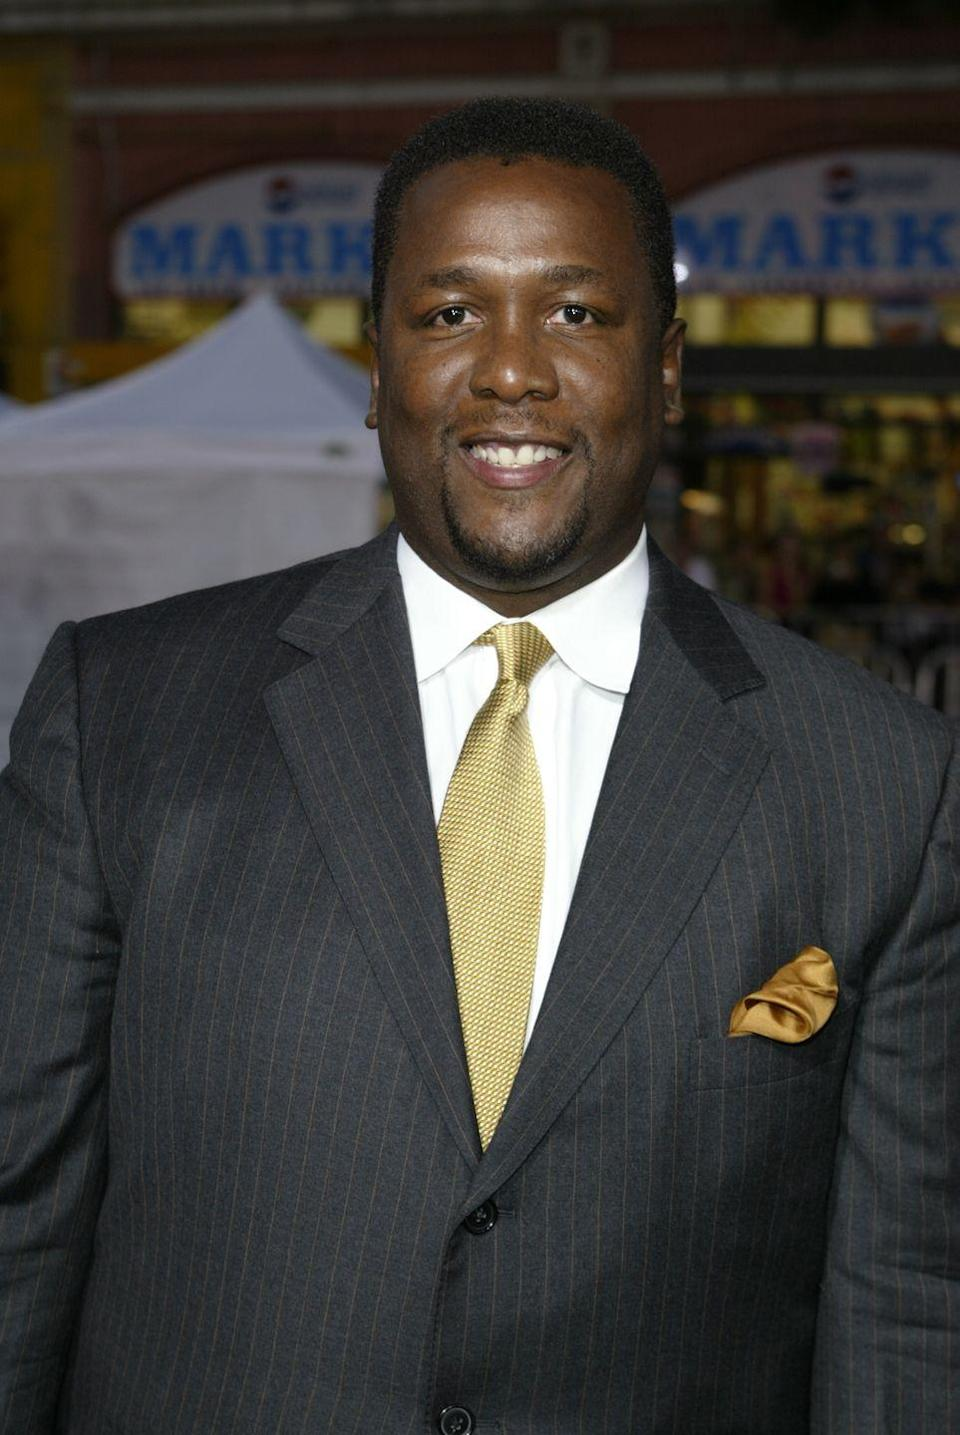 """<p>Wendell Pierce was a fan favorite as Detective Bunk Moreland, the department's affable, obedient foil to the often-insubordinate McNulty. The duo shared the <a href=""""https://www.youtube.com/watch?v=iWwUR7h2kkQ&has_verified=1"""" rel=""""nofollow noopener"""" target=""""_blank"""" data-ylk=""""slk:iconic &quot;f-word&quot; scene"""" class=""""link rapid-noclick-resp"""">iconic """"f-word"""" scene</a> in season 1, which Pierce <a href=""""https://www.hbo.com/the-wire/interview-with-wendell-pierce"""" rel=""""nofollow noopener"""" target=""""_blank"""" data-ylk=""""slk:told HBO"""" class=""""link rapid-noclick-resp"""">told HBO</a> was his most memorable scene he filmed for the series. </p>"""